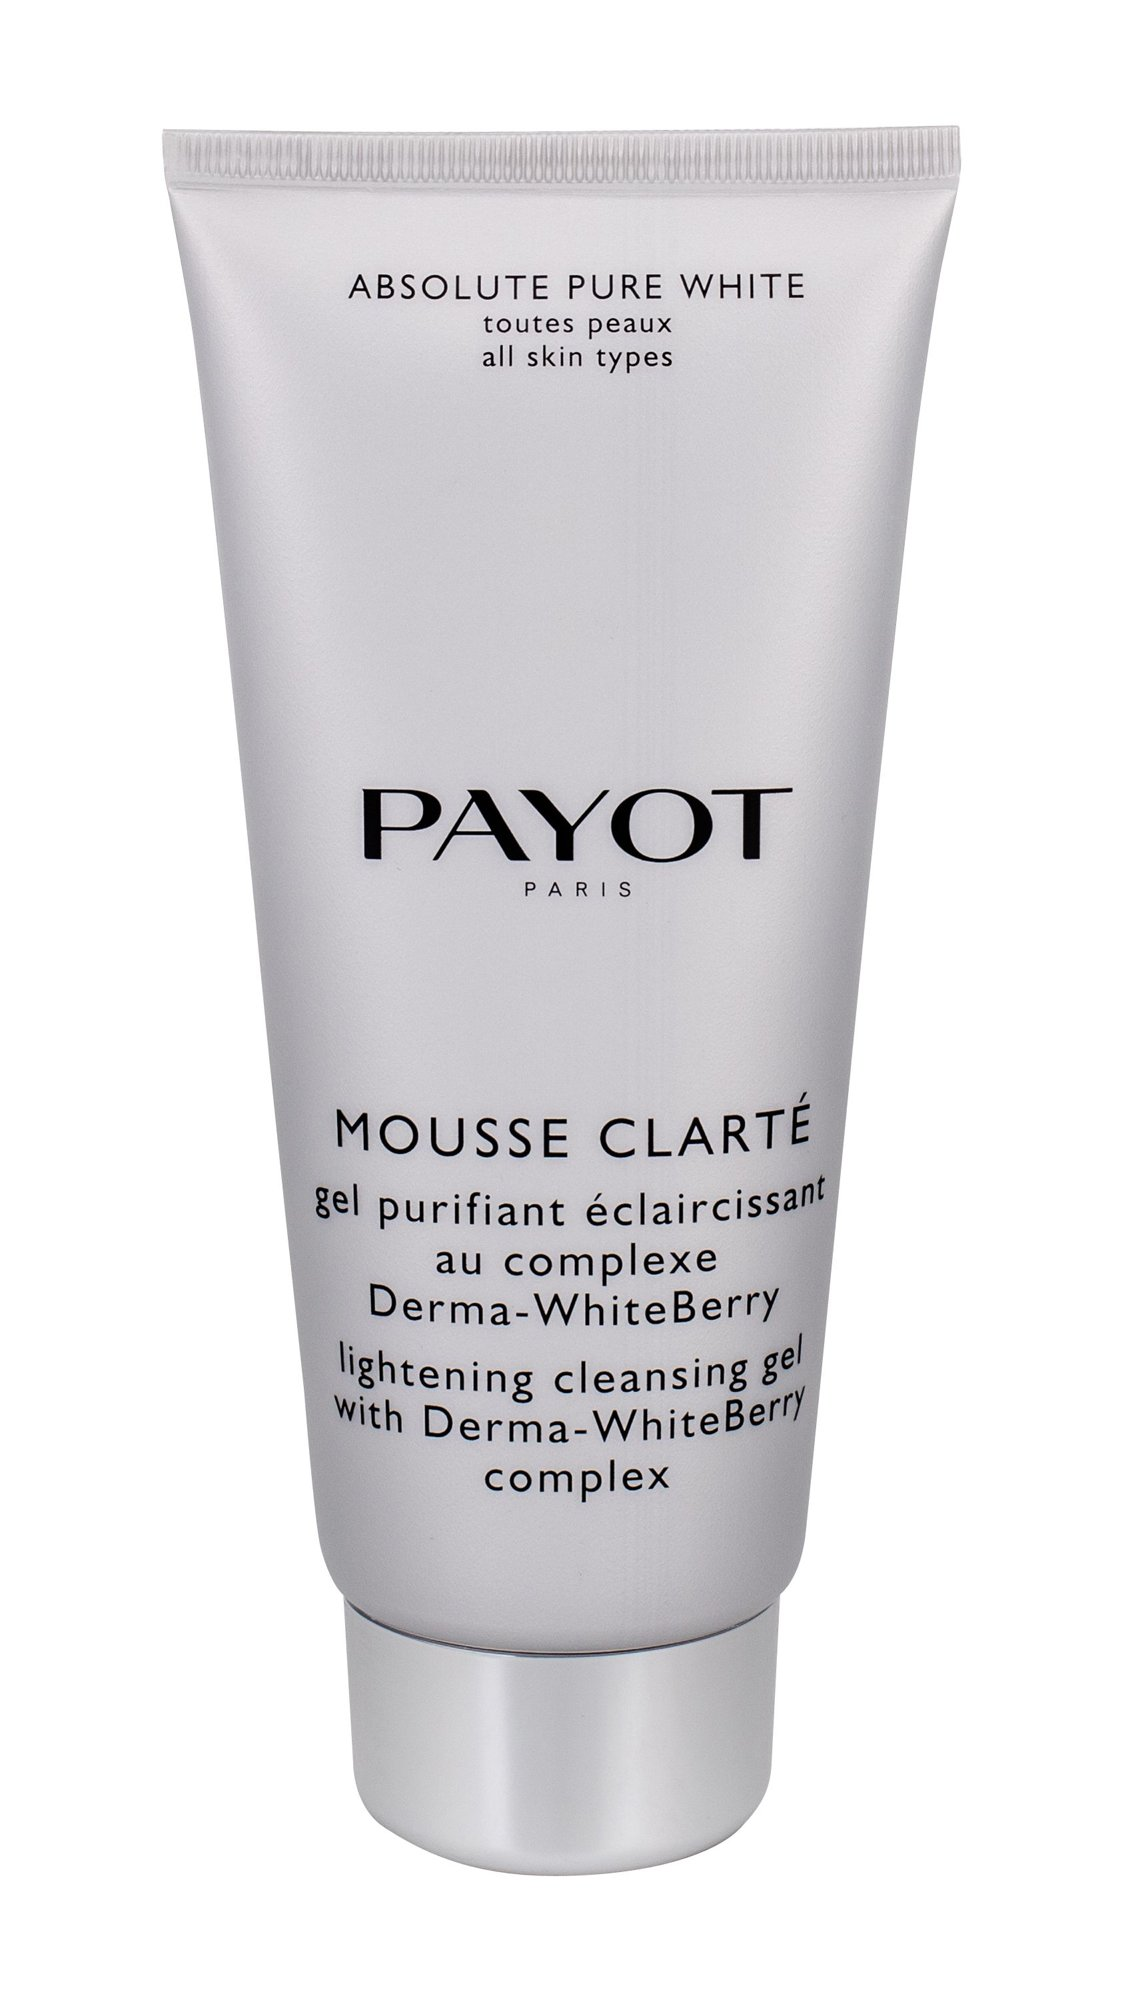 Payot Mousse Clarté Cleansing Gel Cosmetic 200ml